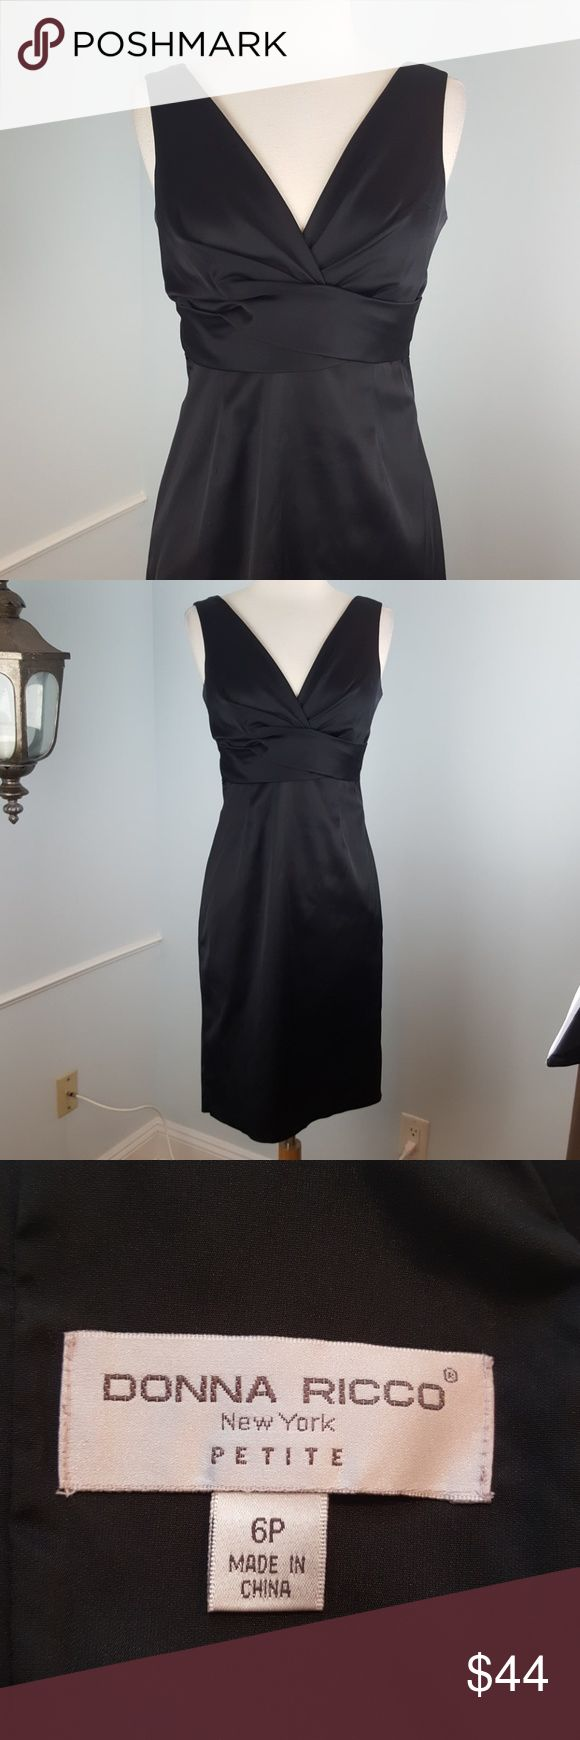 Donna Ricco sheath dress 🖤Excellent condition, measures 37.5 inches from top to bottom Donna Ricco Dresses